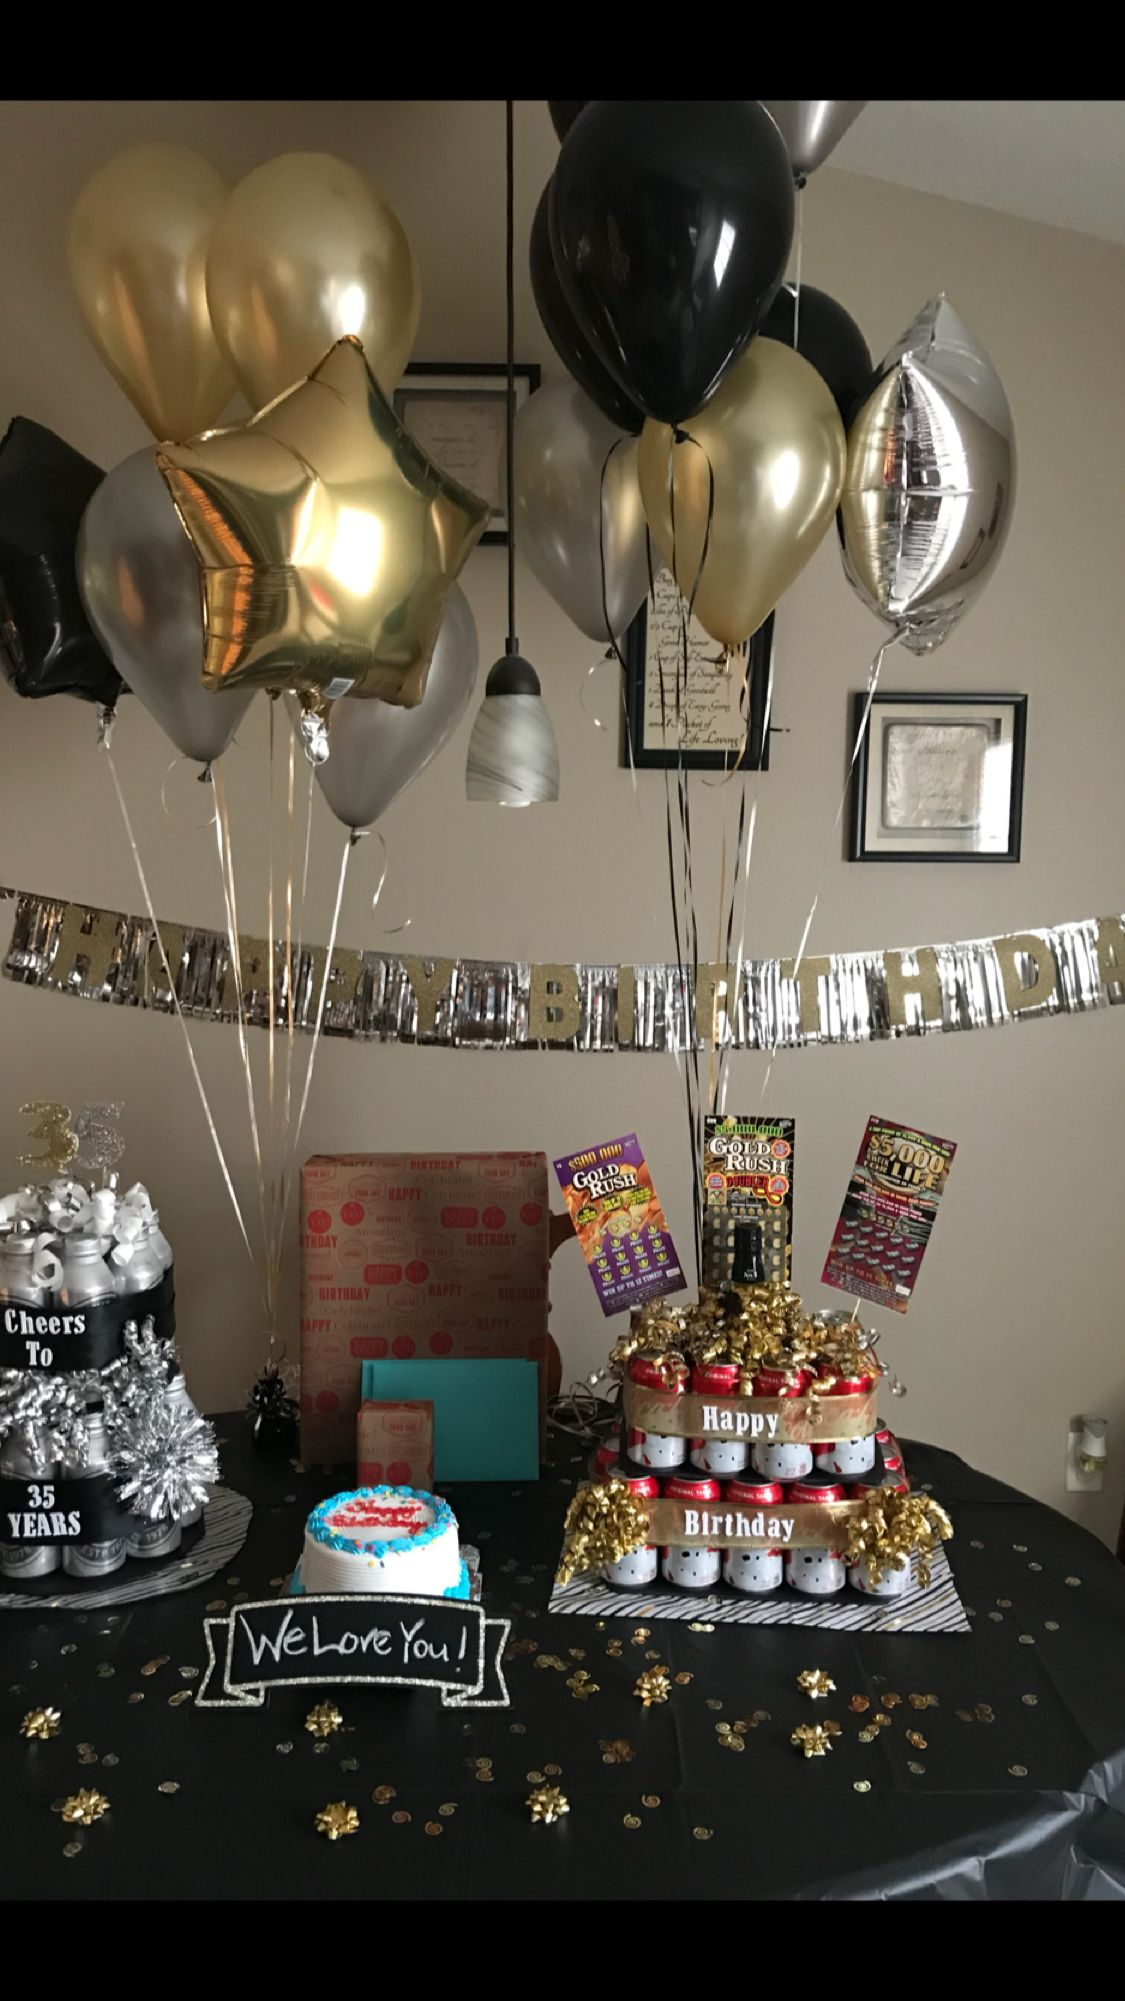 Husband Birthday Surprise